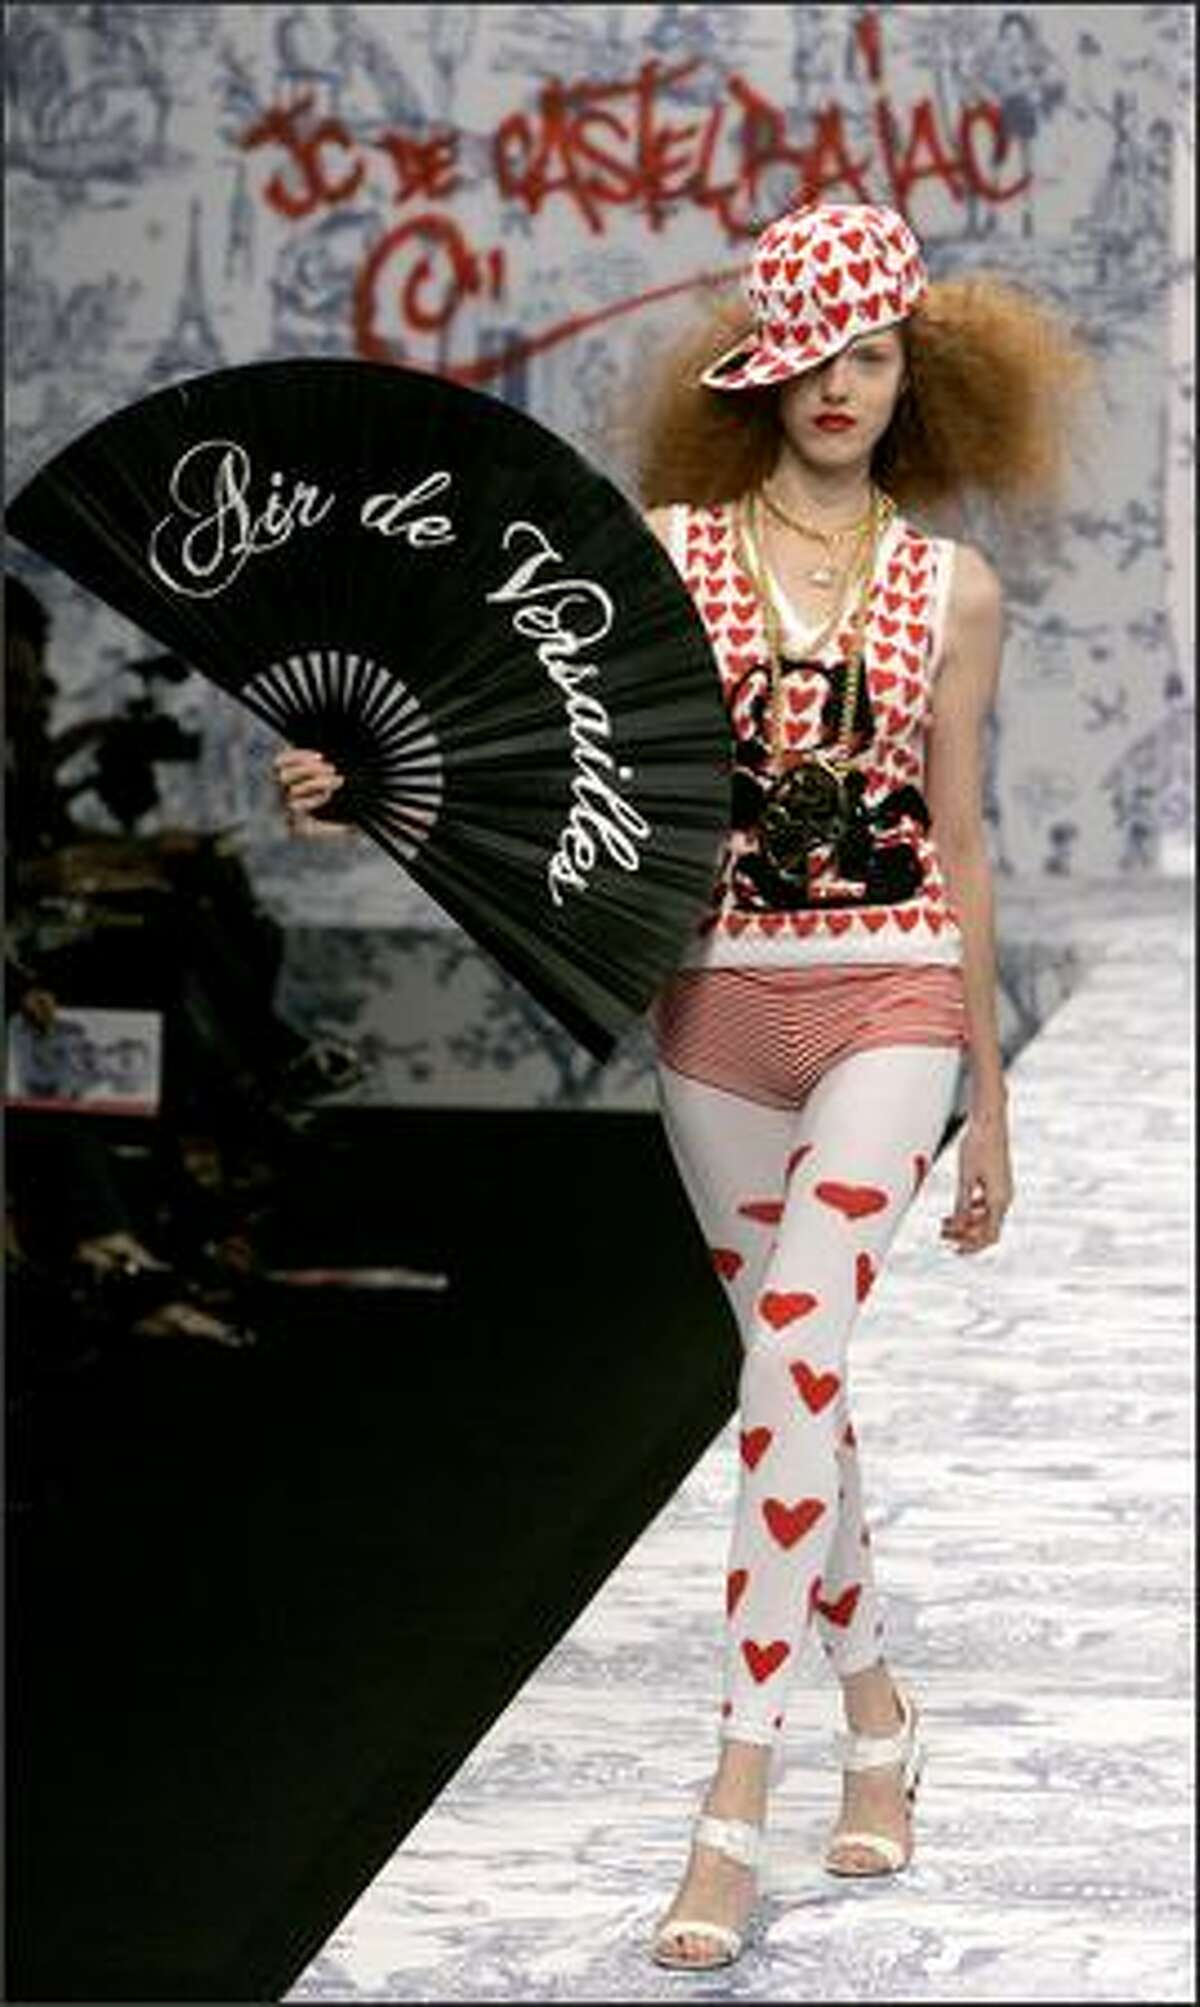 A model presents a creation designed by French fashion designer Jean-Charles de Castelbajac during the presentation of his Spring-summer 2007 ready-to-wear collection, Friday Oct. 6, 2006 in Paris. (AP Photo/Jacques Brinon)